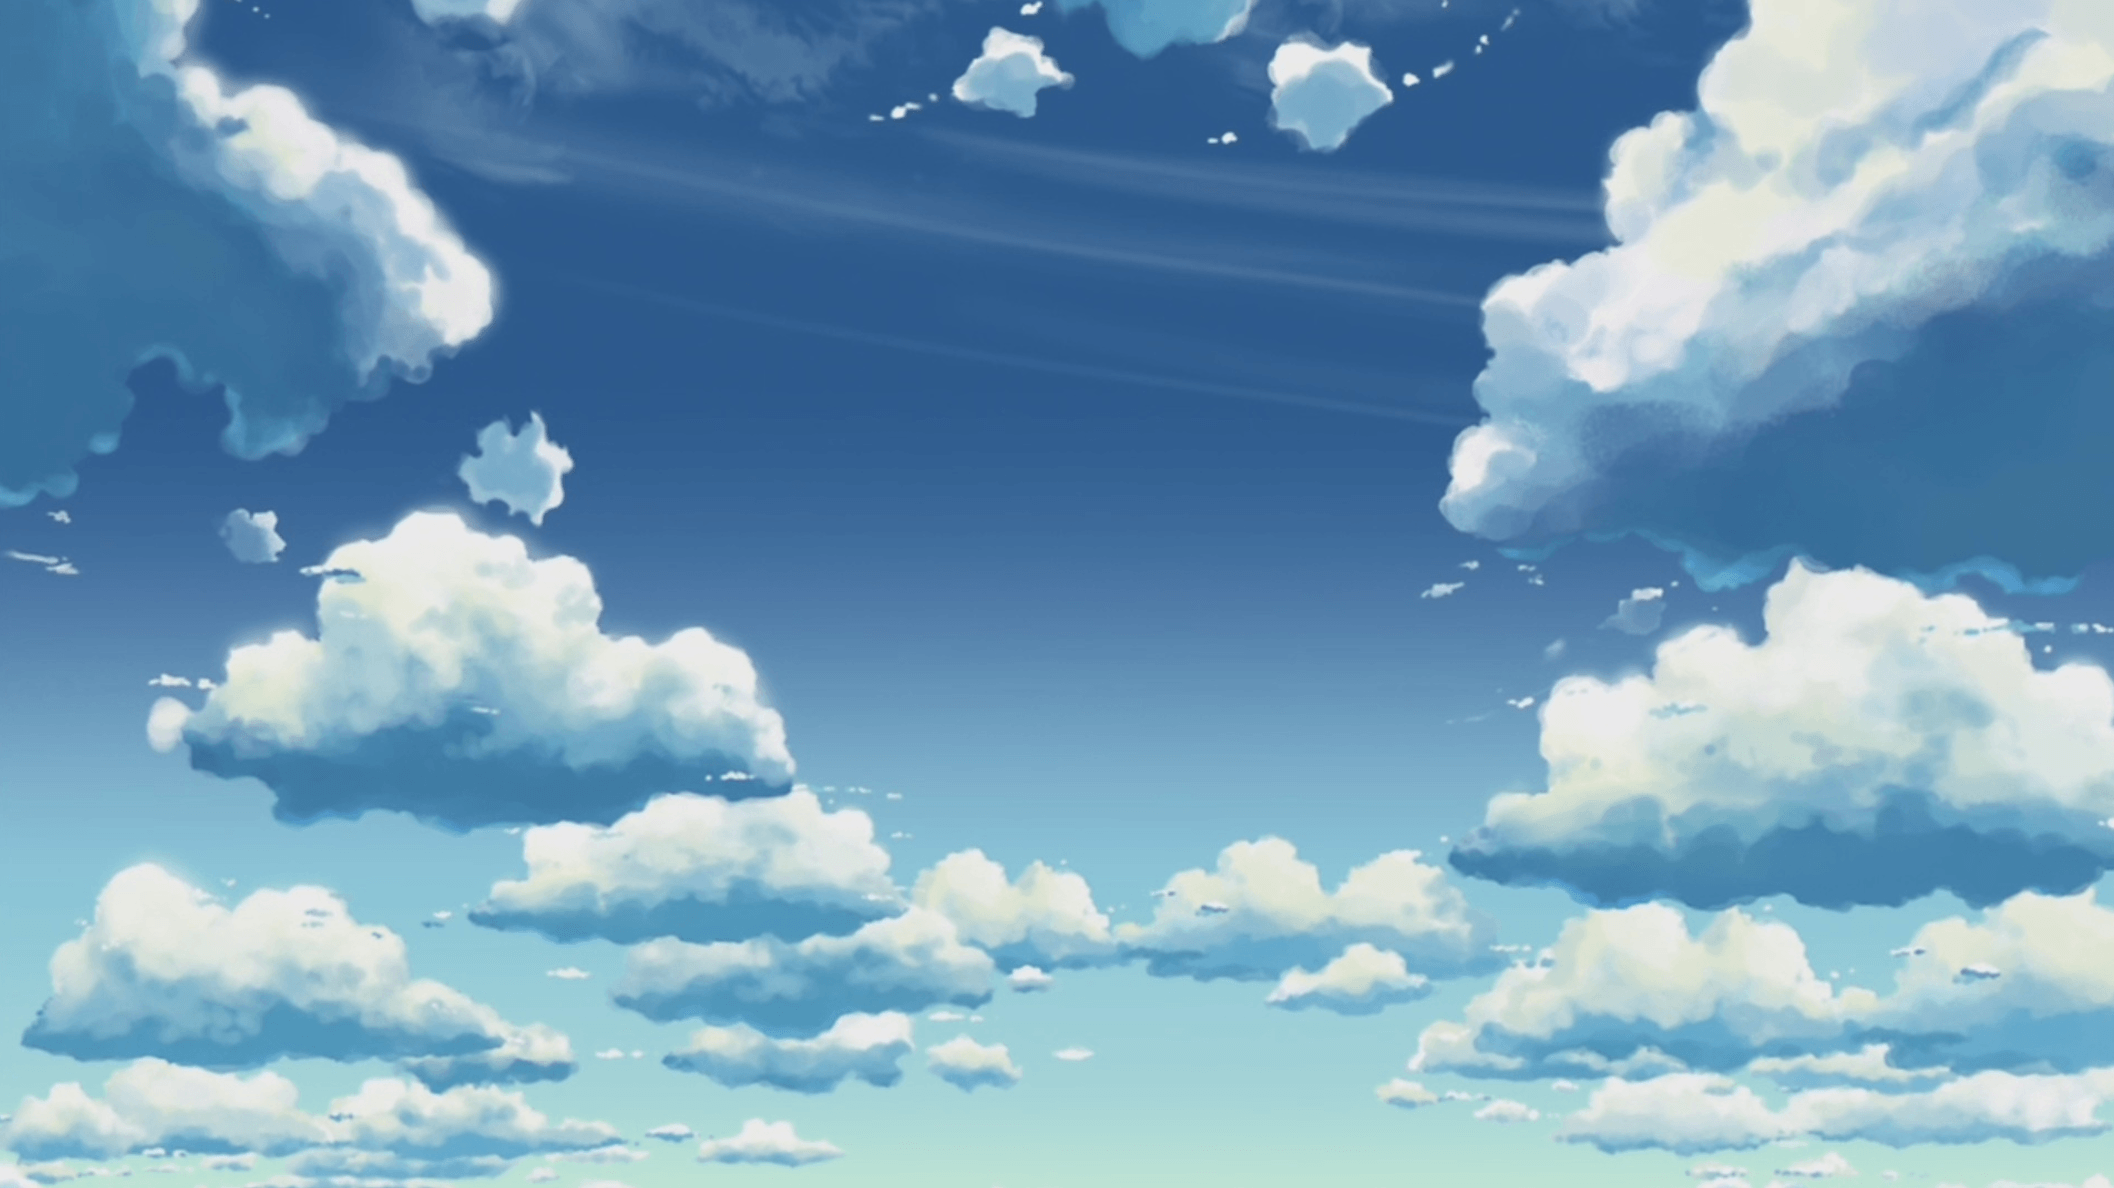 Anime sky wallpapers wallpaper cave - Anime images download ...